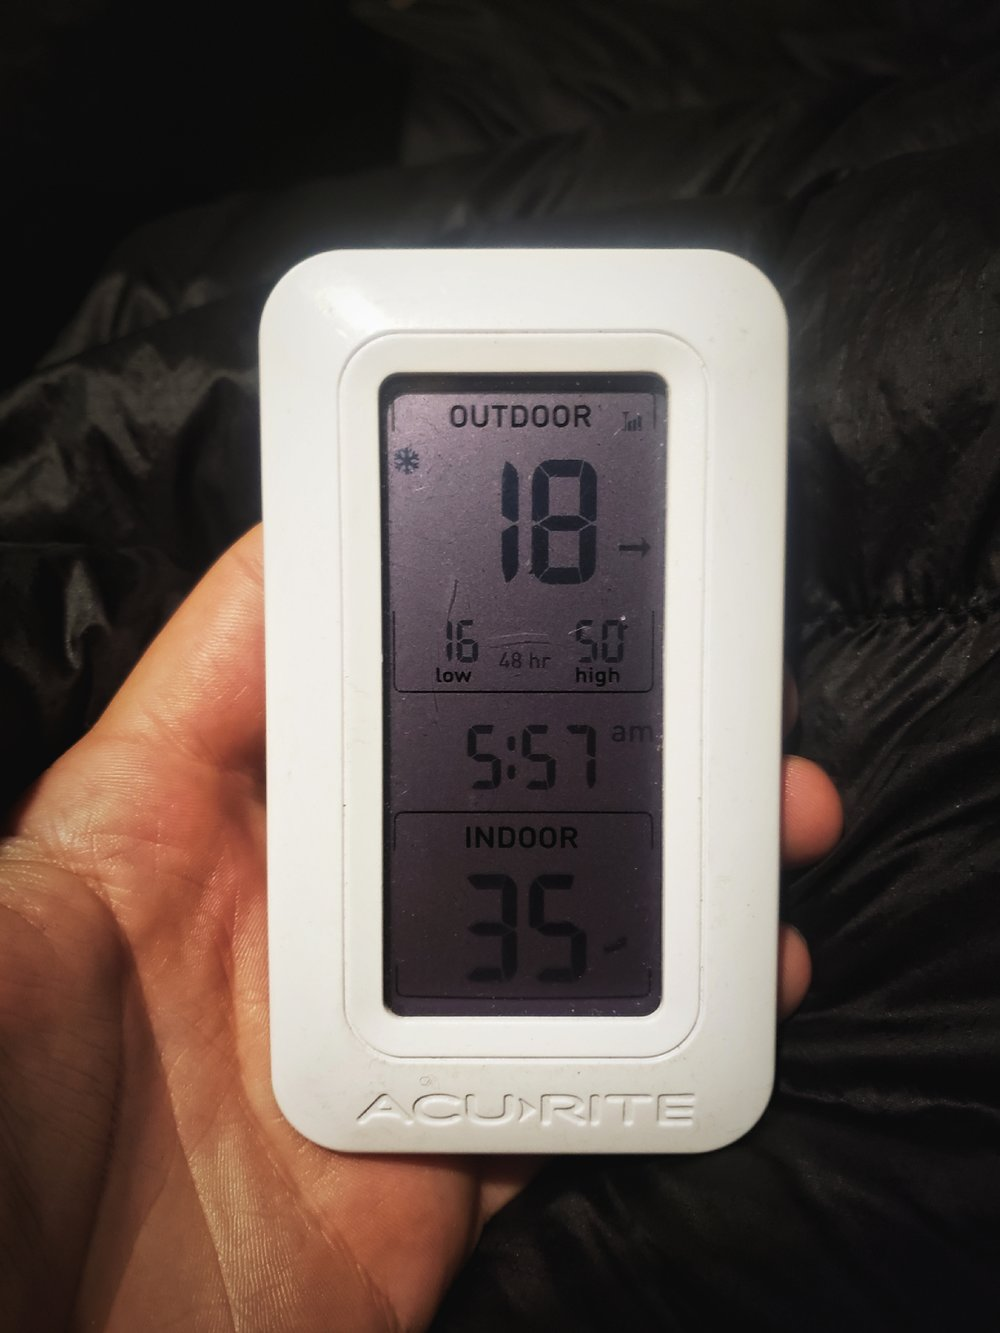 We encountered some of the coldest temperatures we've ever slept in the van in while in Bryce. (This  thermometer  is nice because it shows us the temperature in our van and outdoors.)